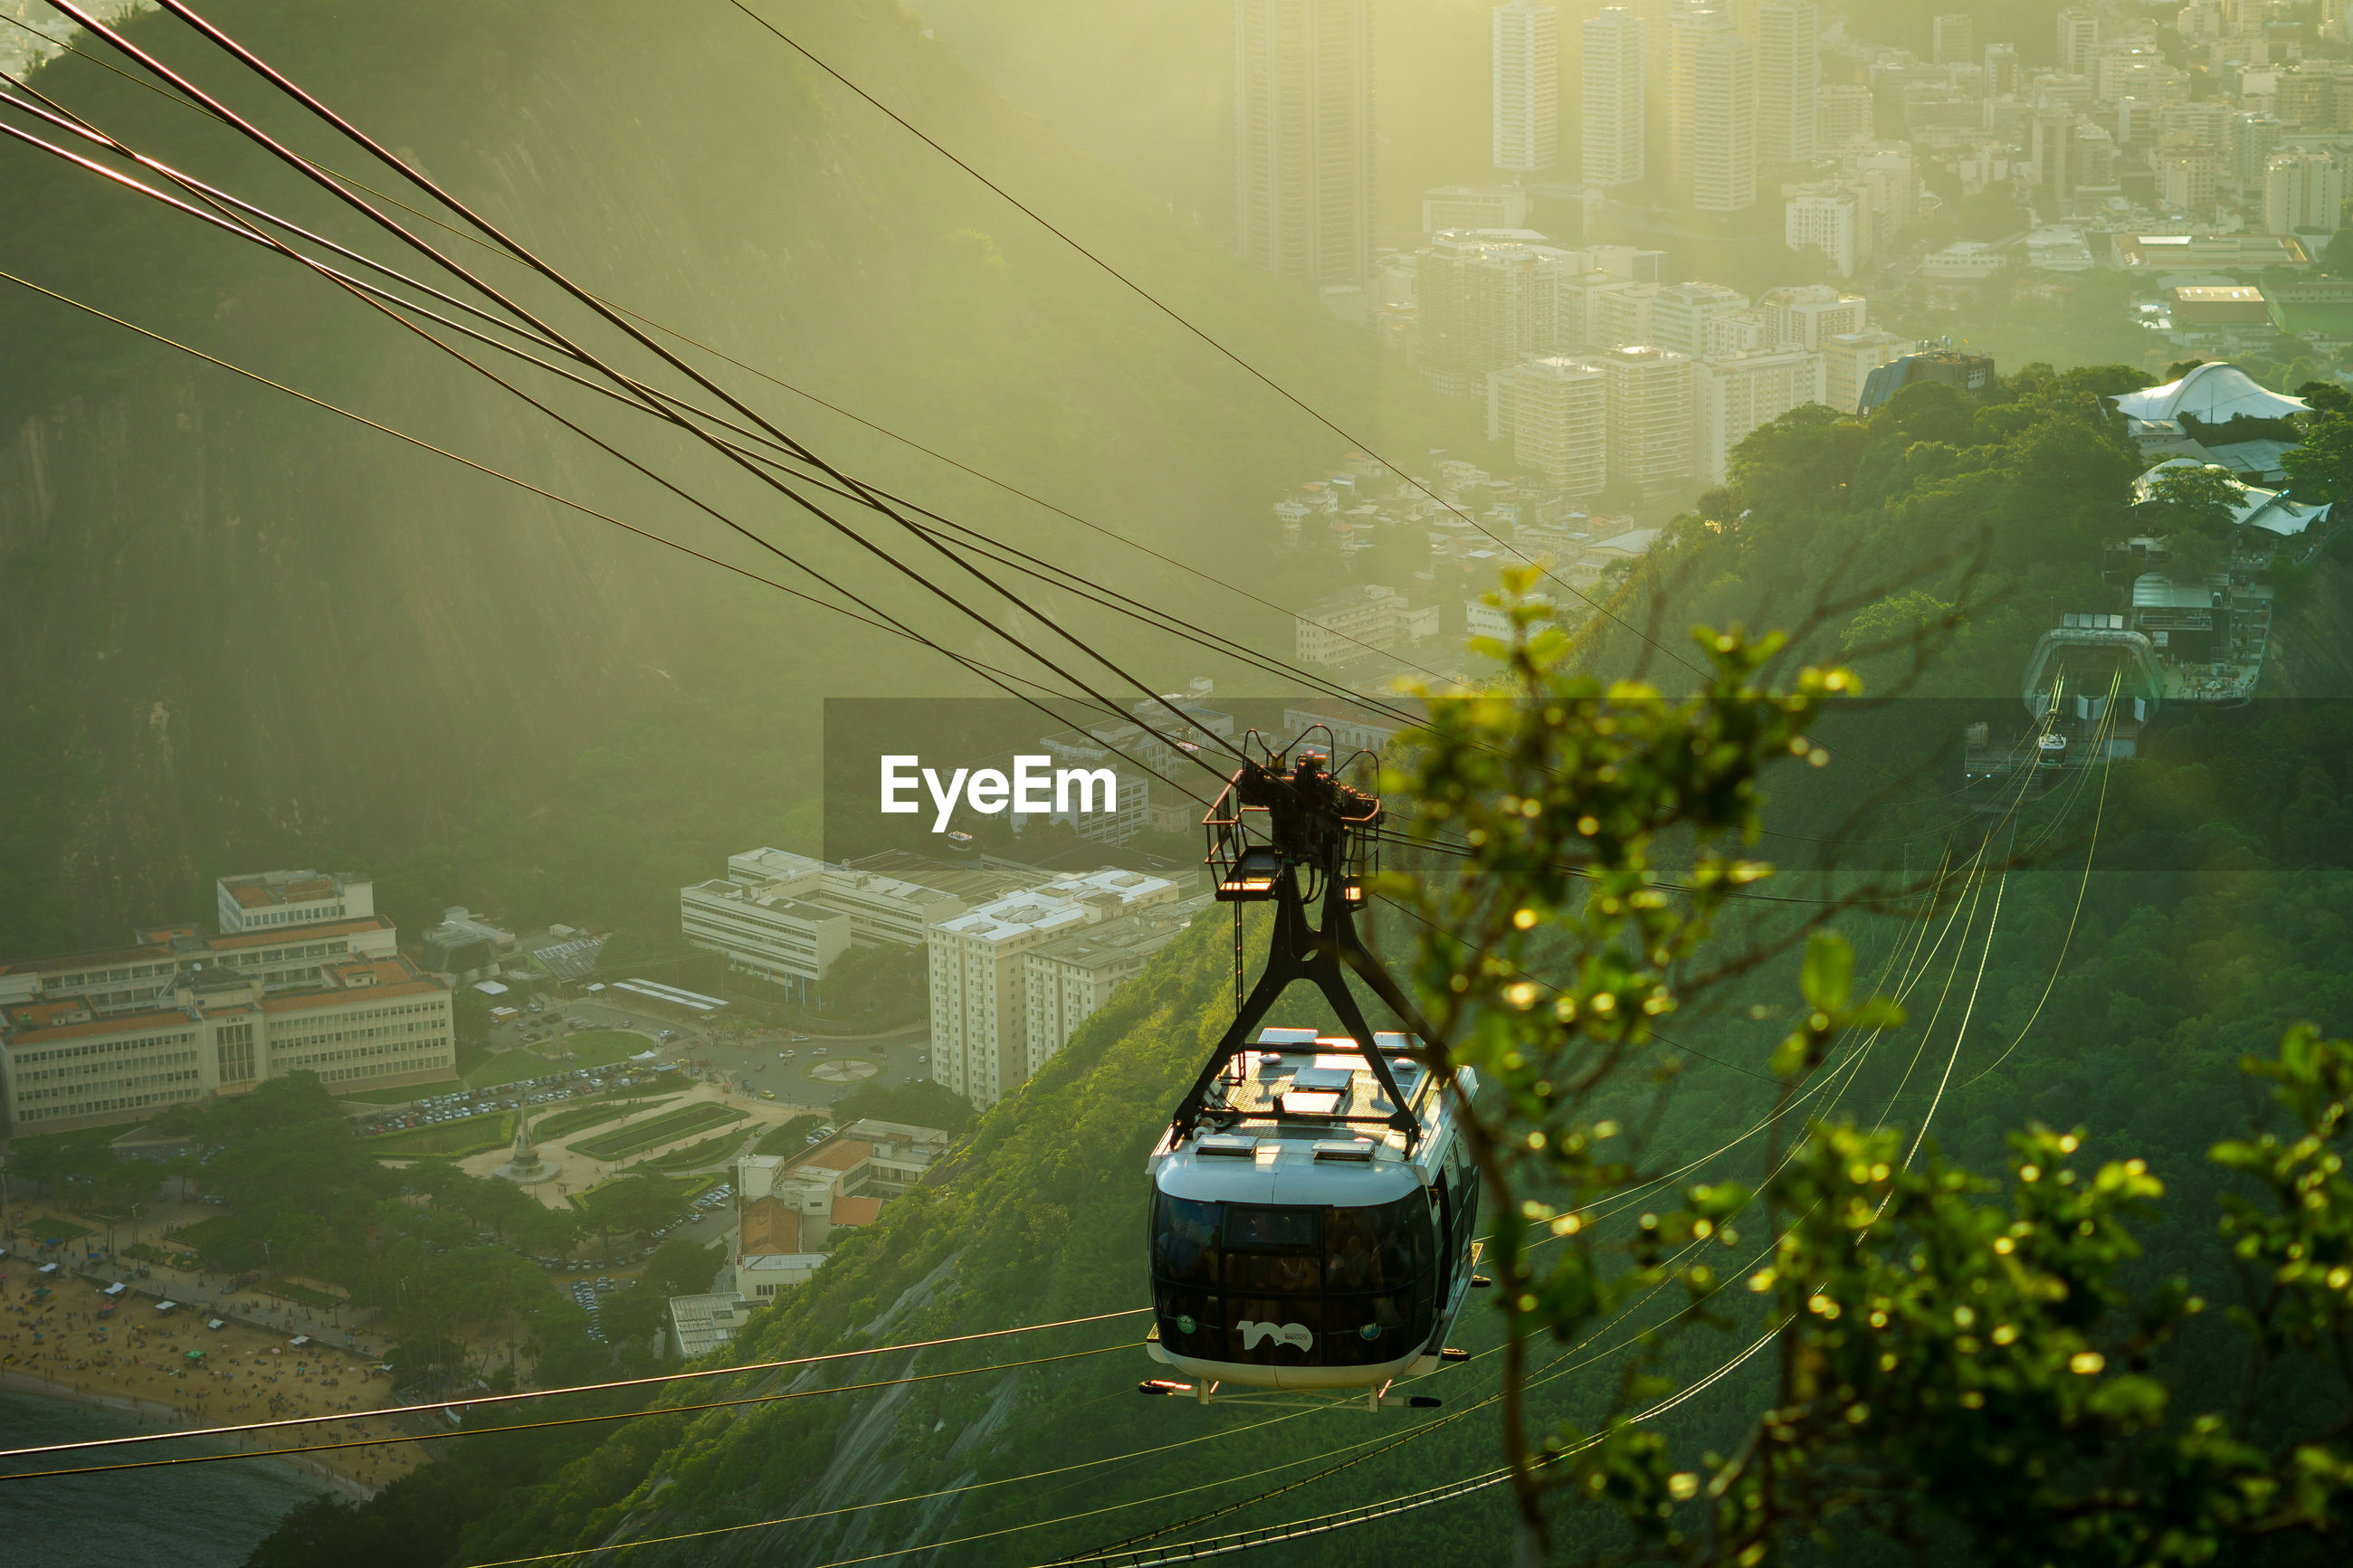 High angle view of overhead cable car over cityscape